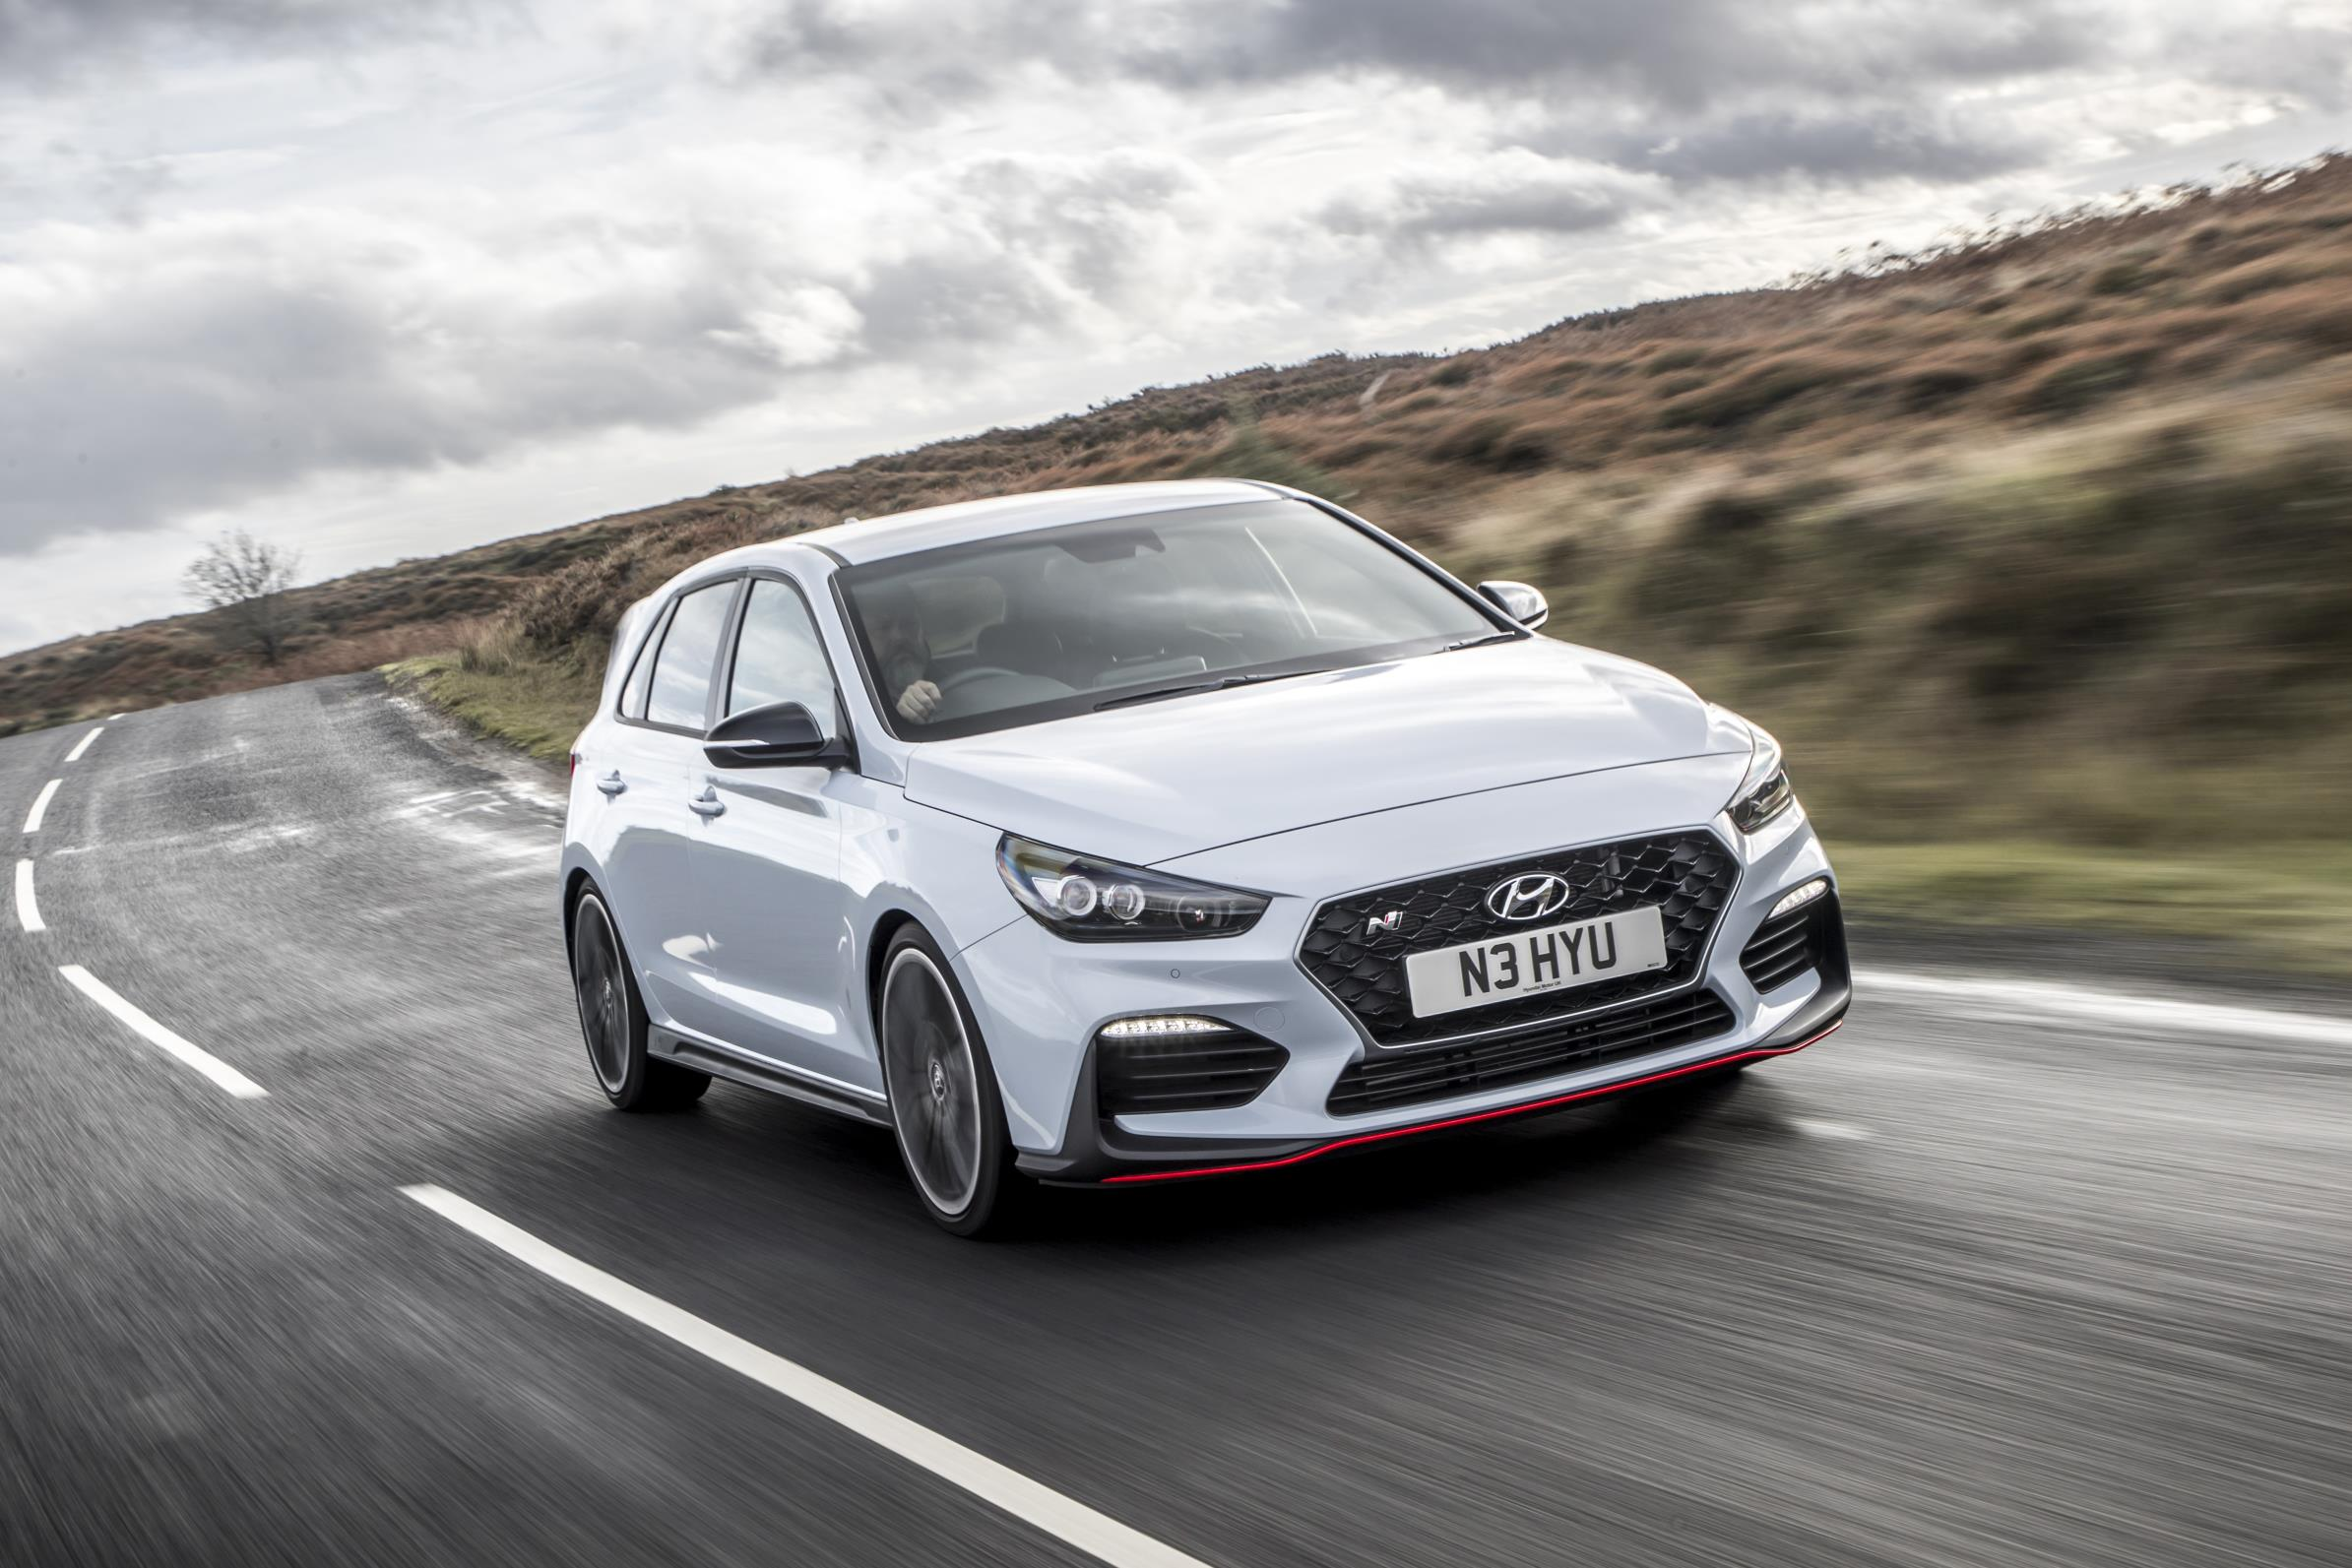 Hyundai I30 N Wins Best Hot Hatch in Car of the Year Awards 2018